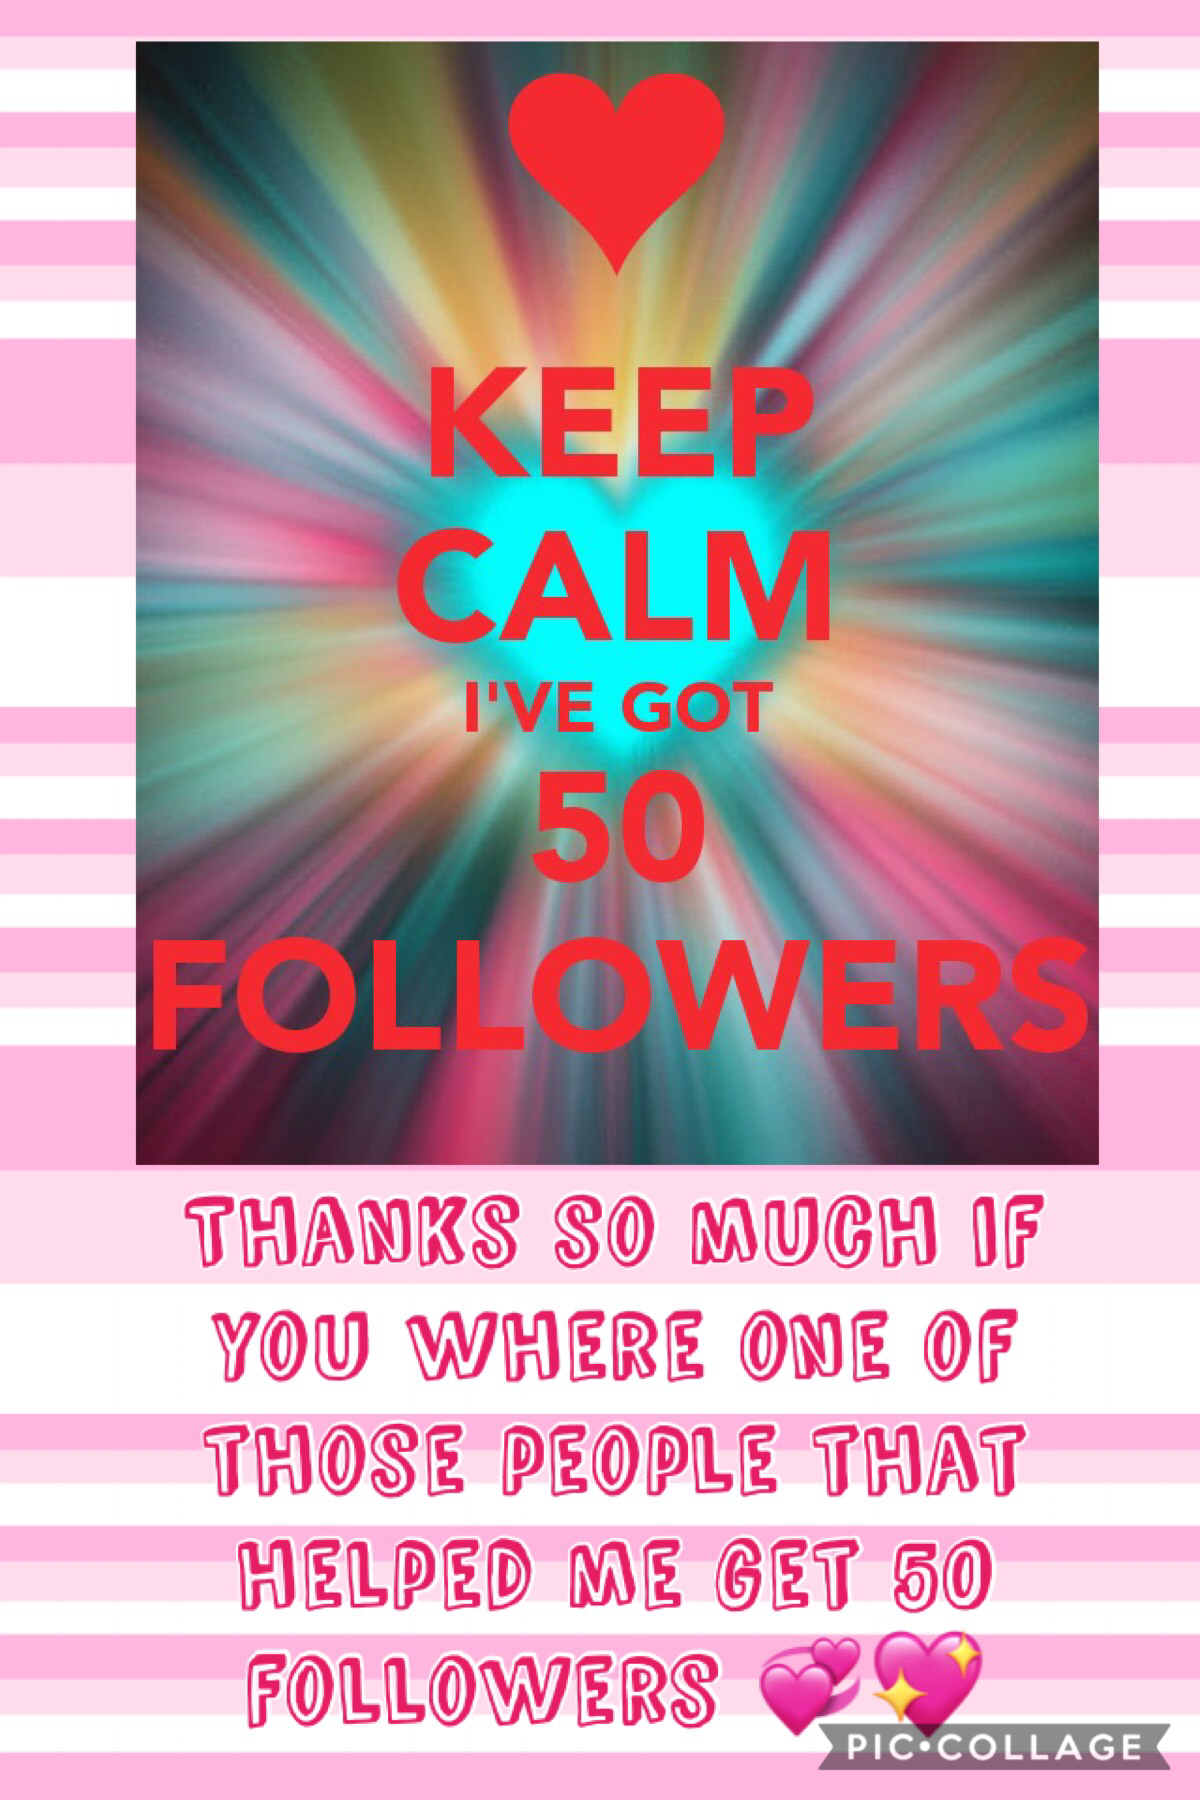 Yay 50 thanks so much